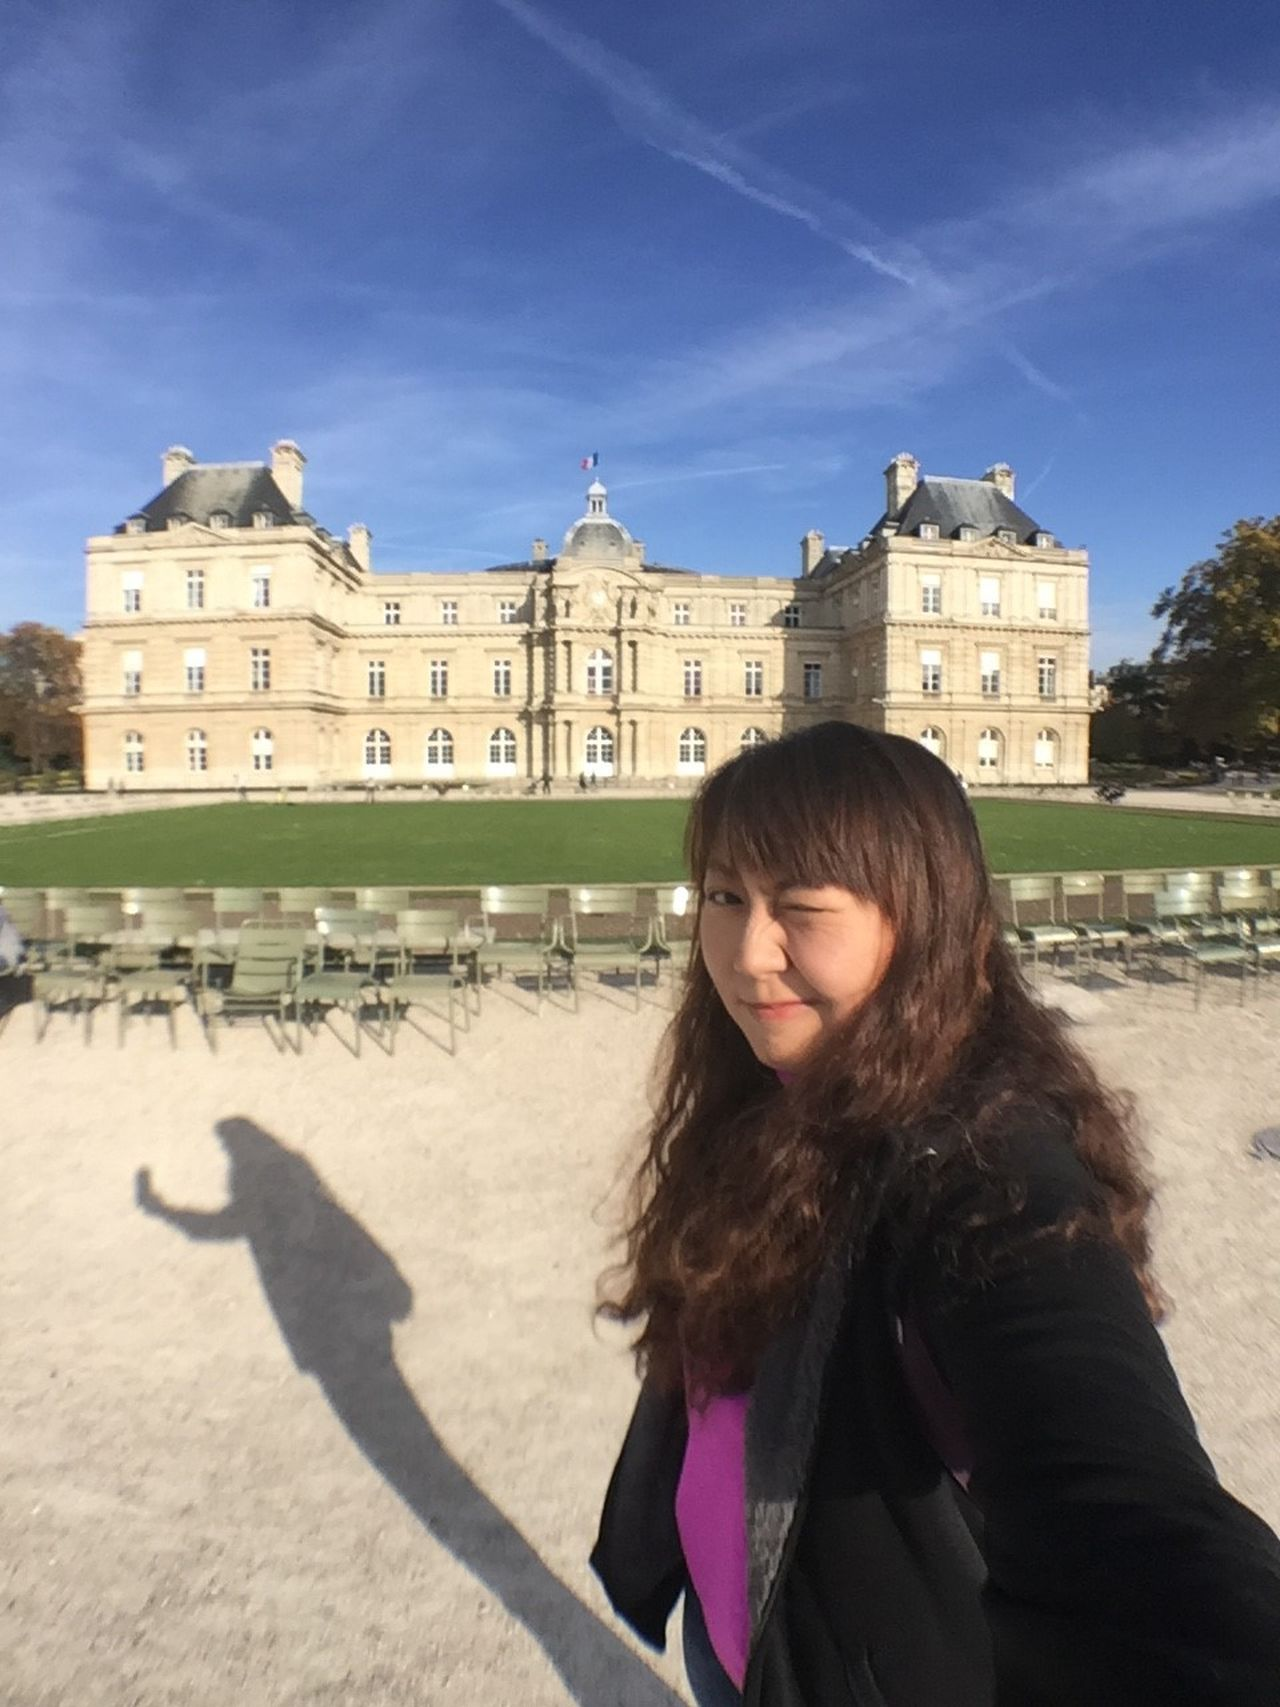 MeMyself at Luxembourg Garden, Paris, France One Person Young Women Young Adult Architecture Building Exterior The Portraitist - 2017 EyeEm Awards Travel Destinations Long Hair Portrait Adult Vacations Outdoors One Young Woman Only Only Women Sky Neighborhood Map EyeEmNewHere CaptureTheMoment Goodmemories Smile Is The Best Make-up A Girl Can Wear Wink Shadow Selfie